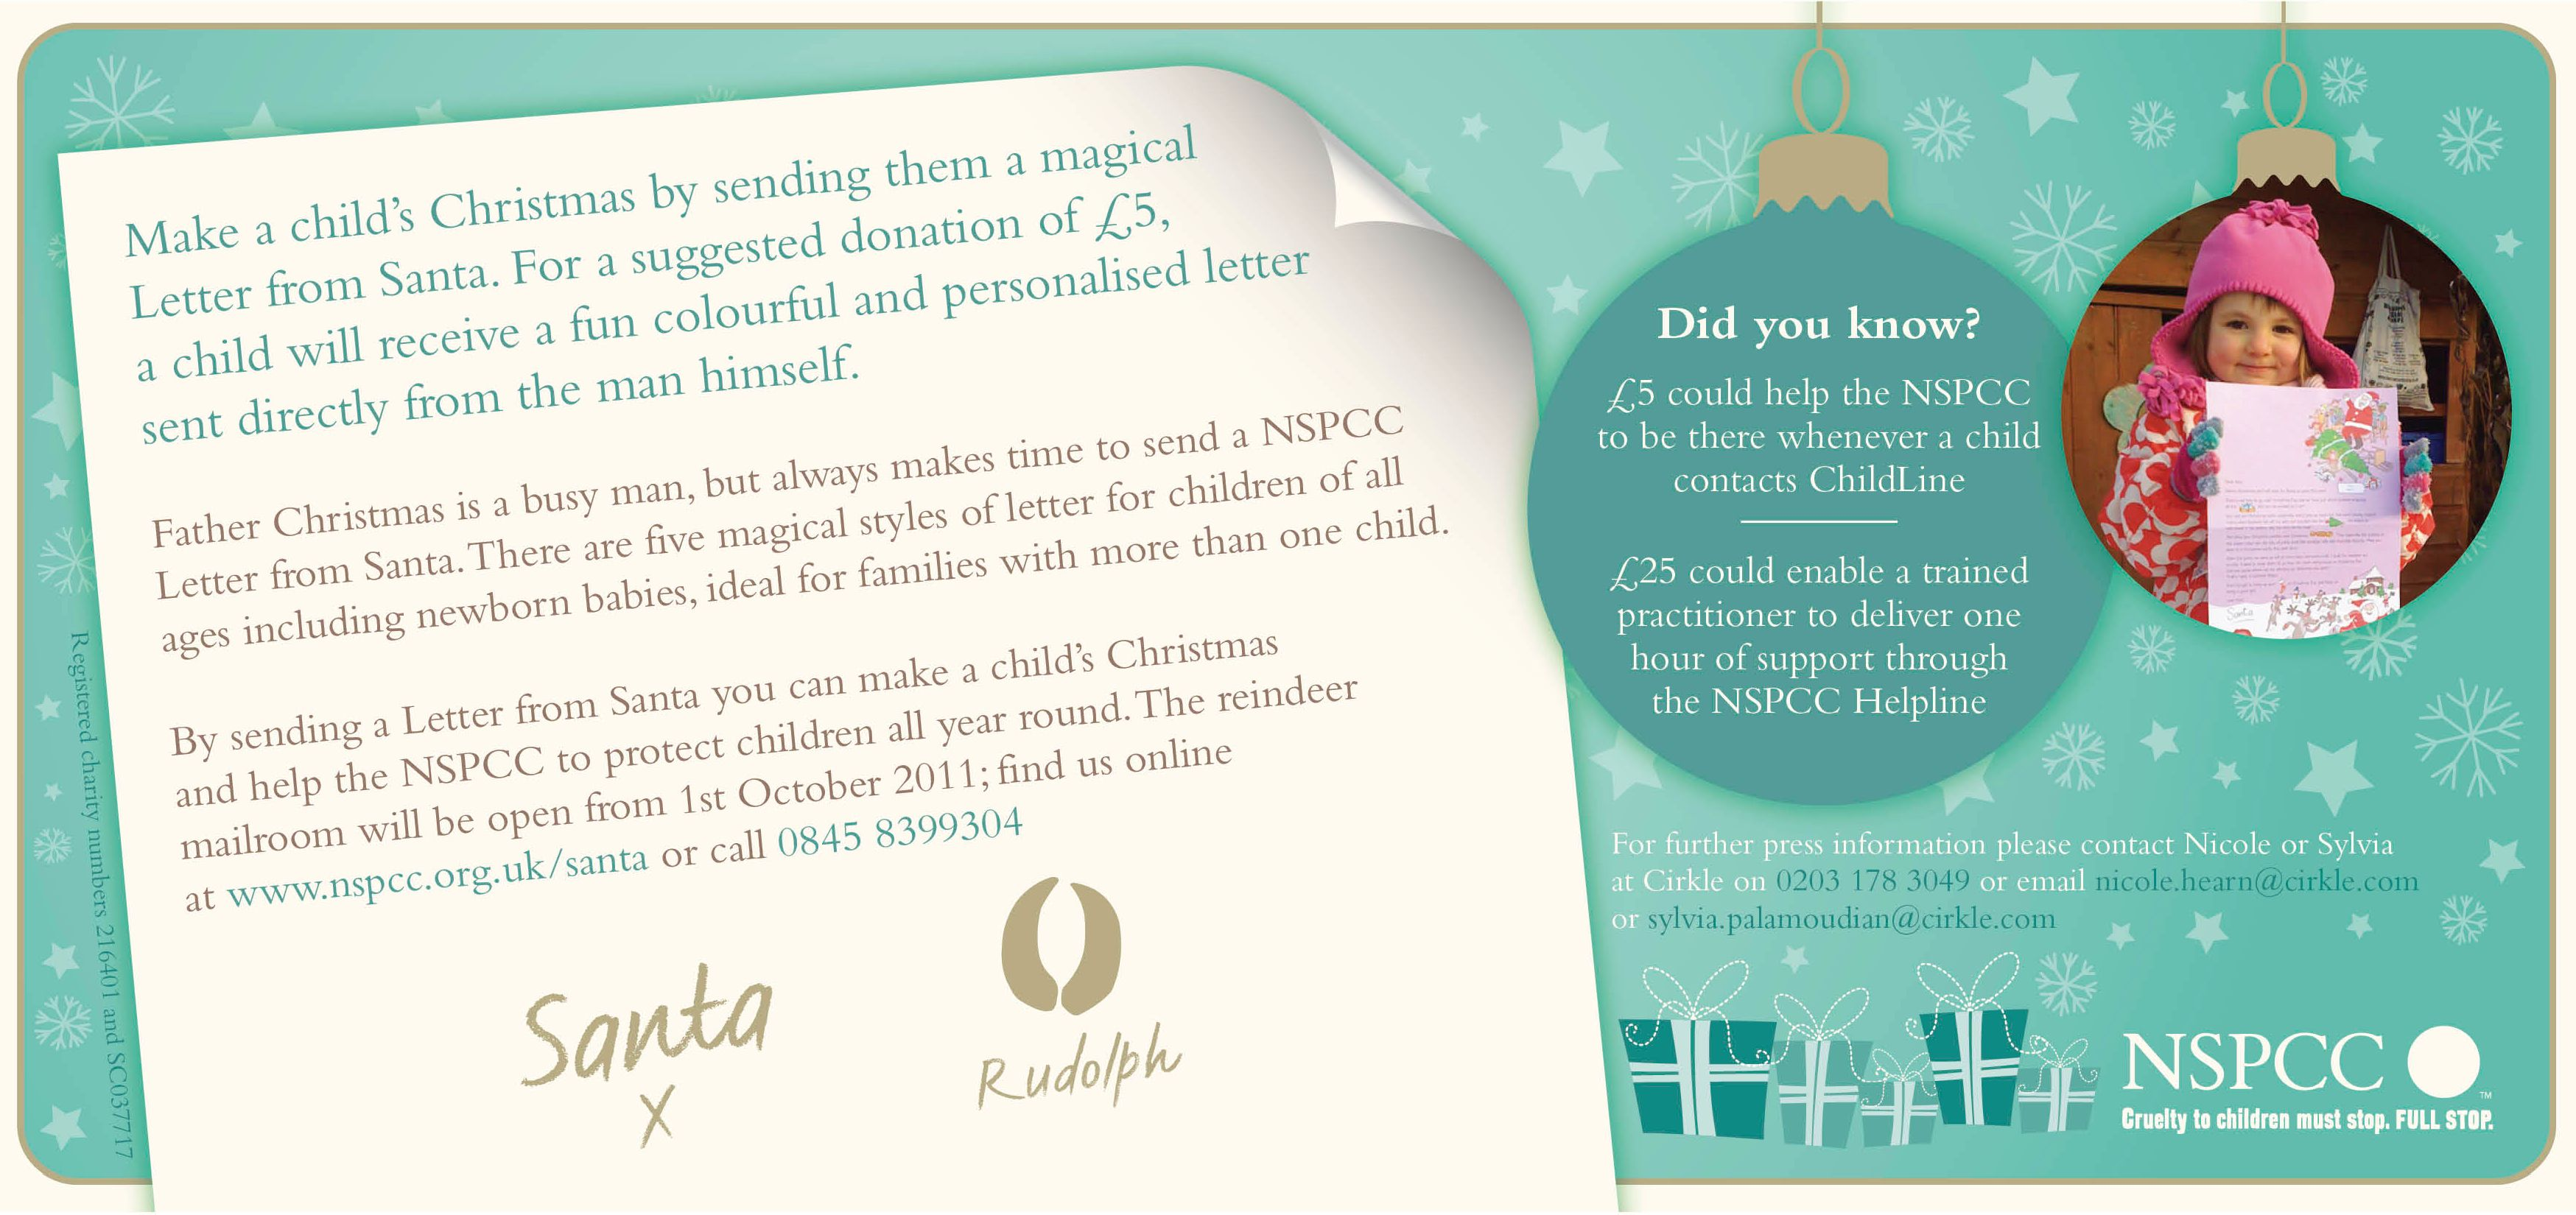 make a childs christmas with an nspcc letter from santa loved